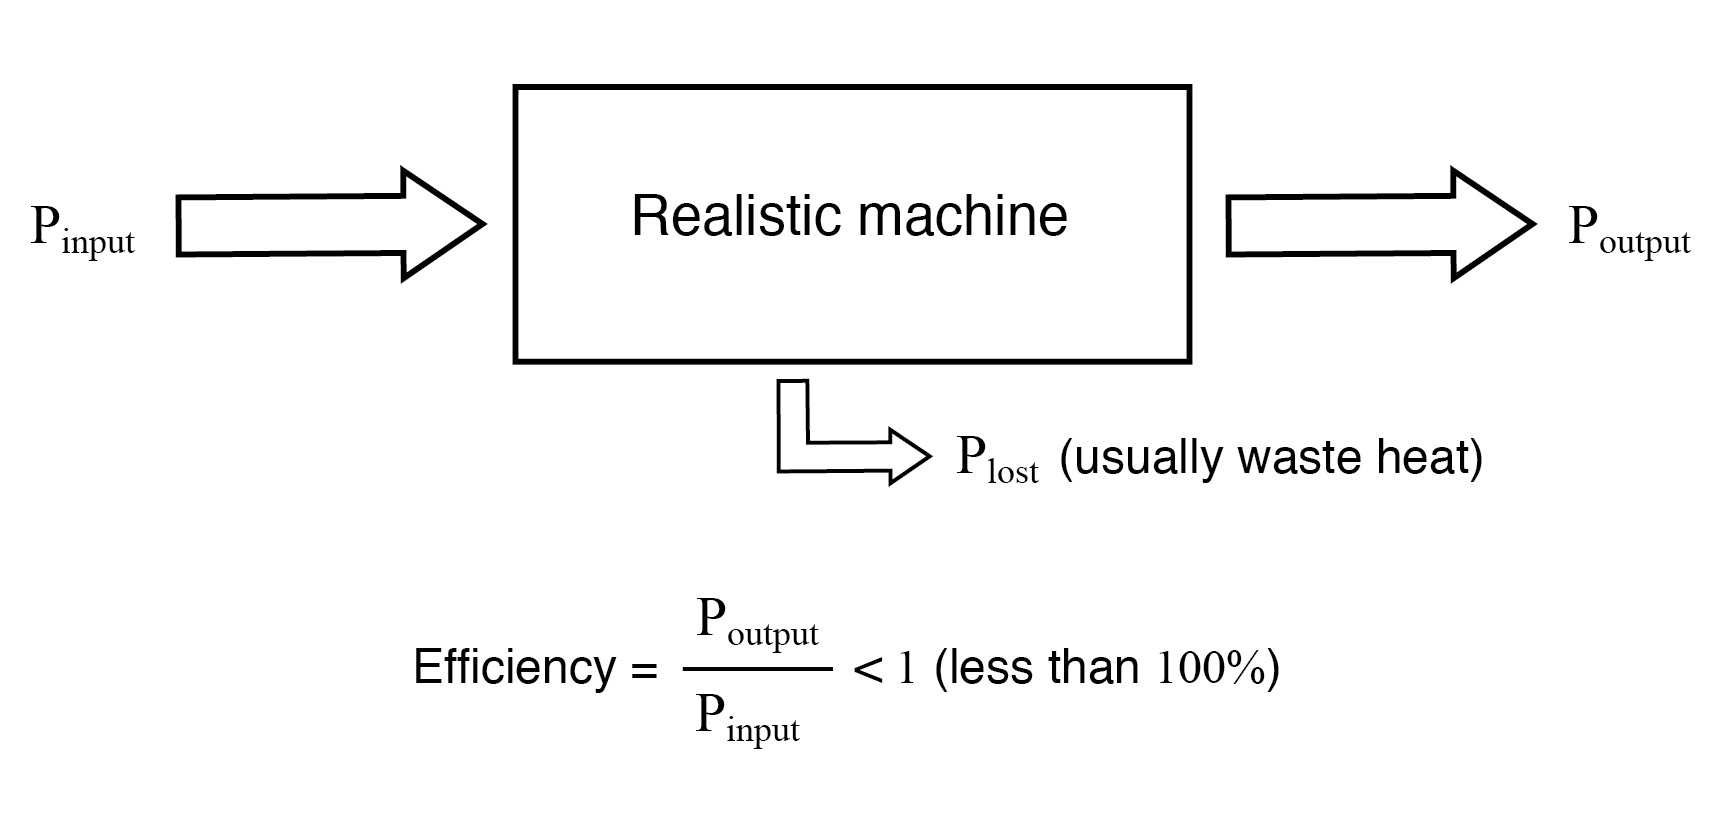 A realistic machine most often loses some of its input energy as heat in transforming it into the output energy stream.